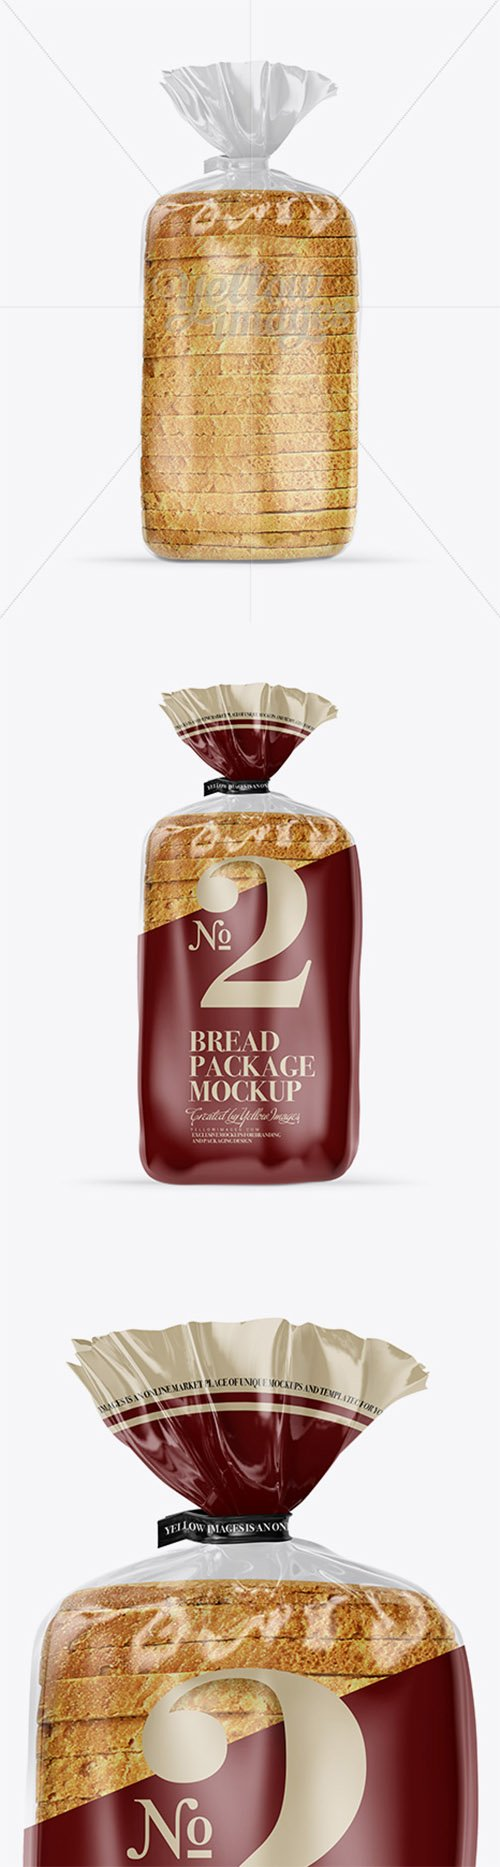 Bread Package With Clip Mockup 18306 TIF